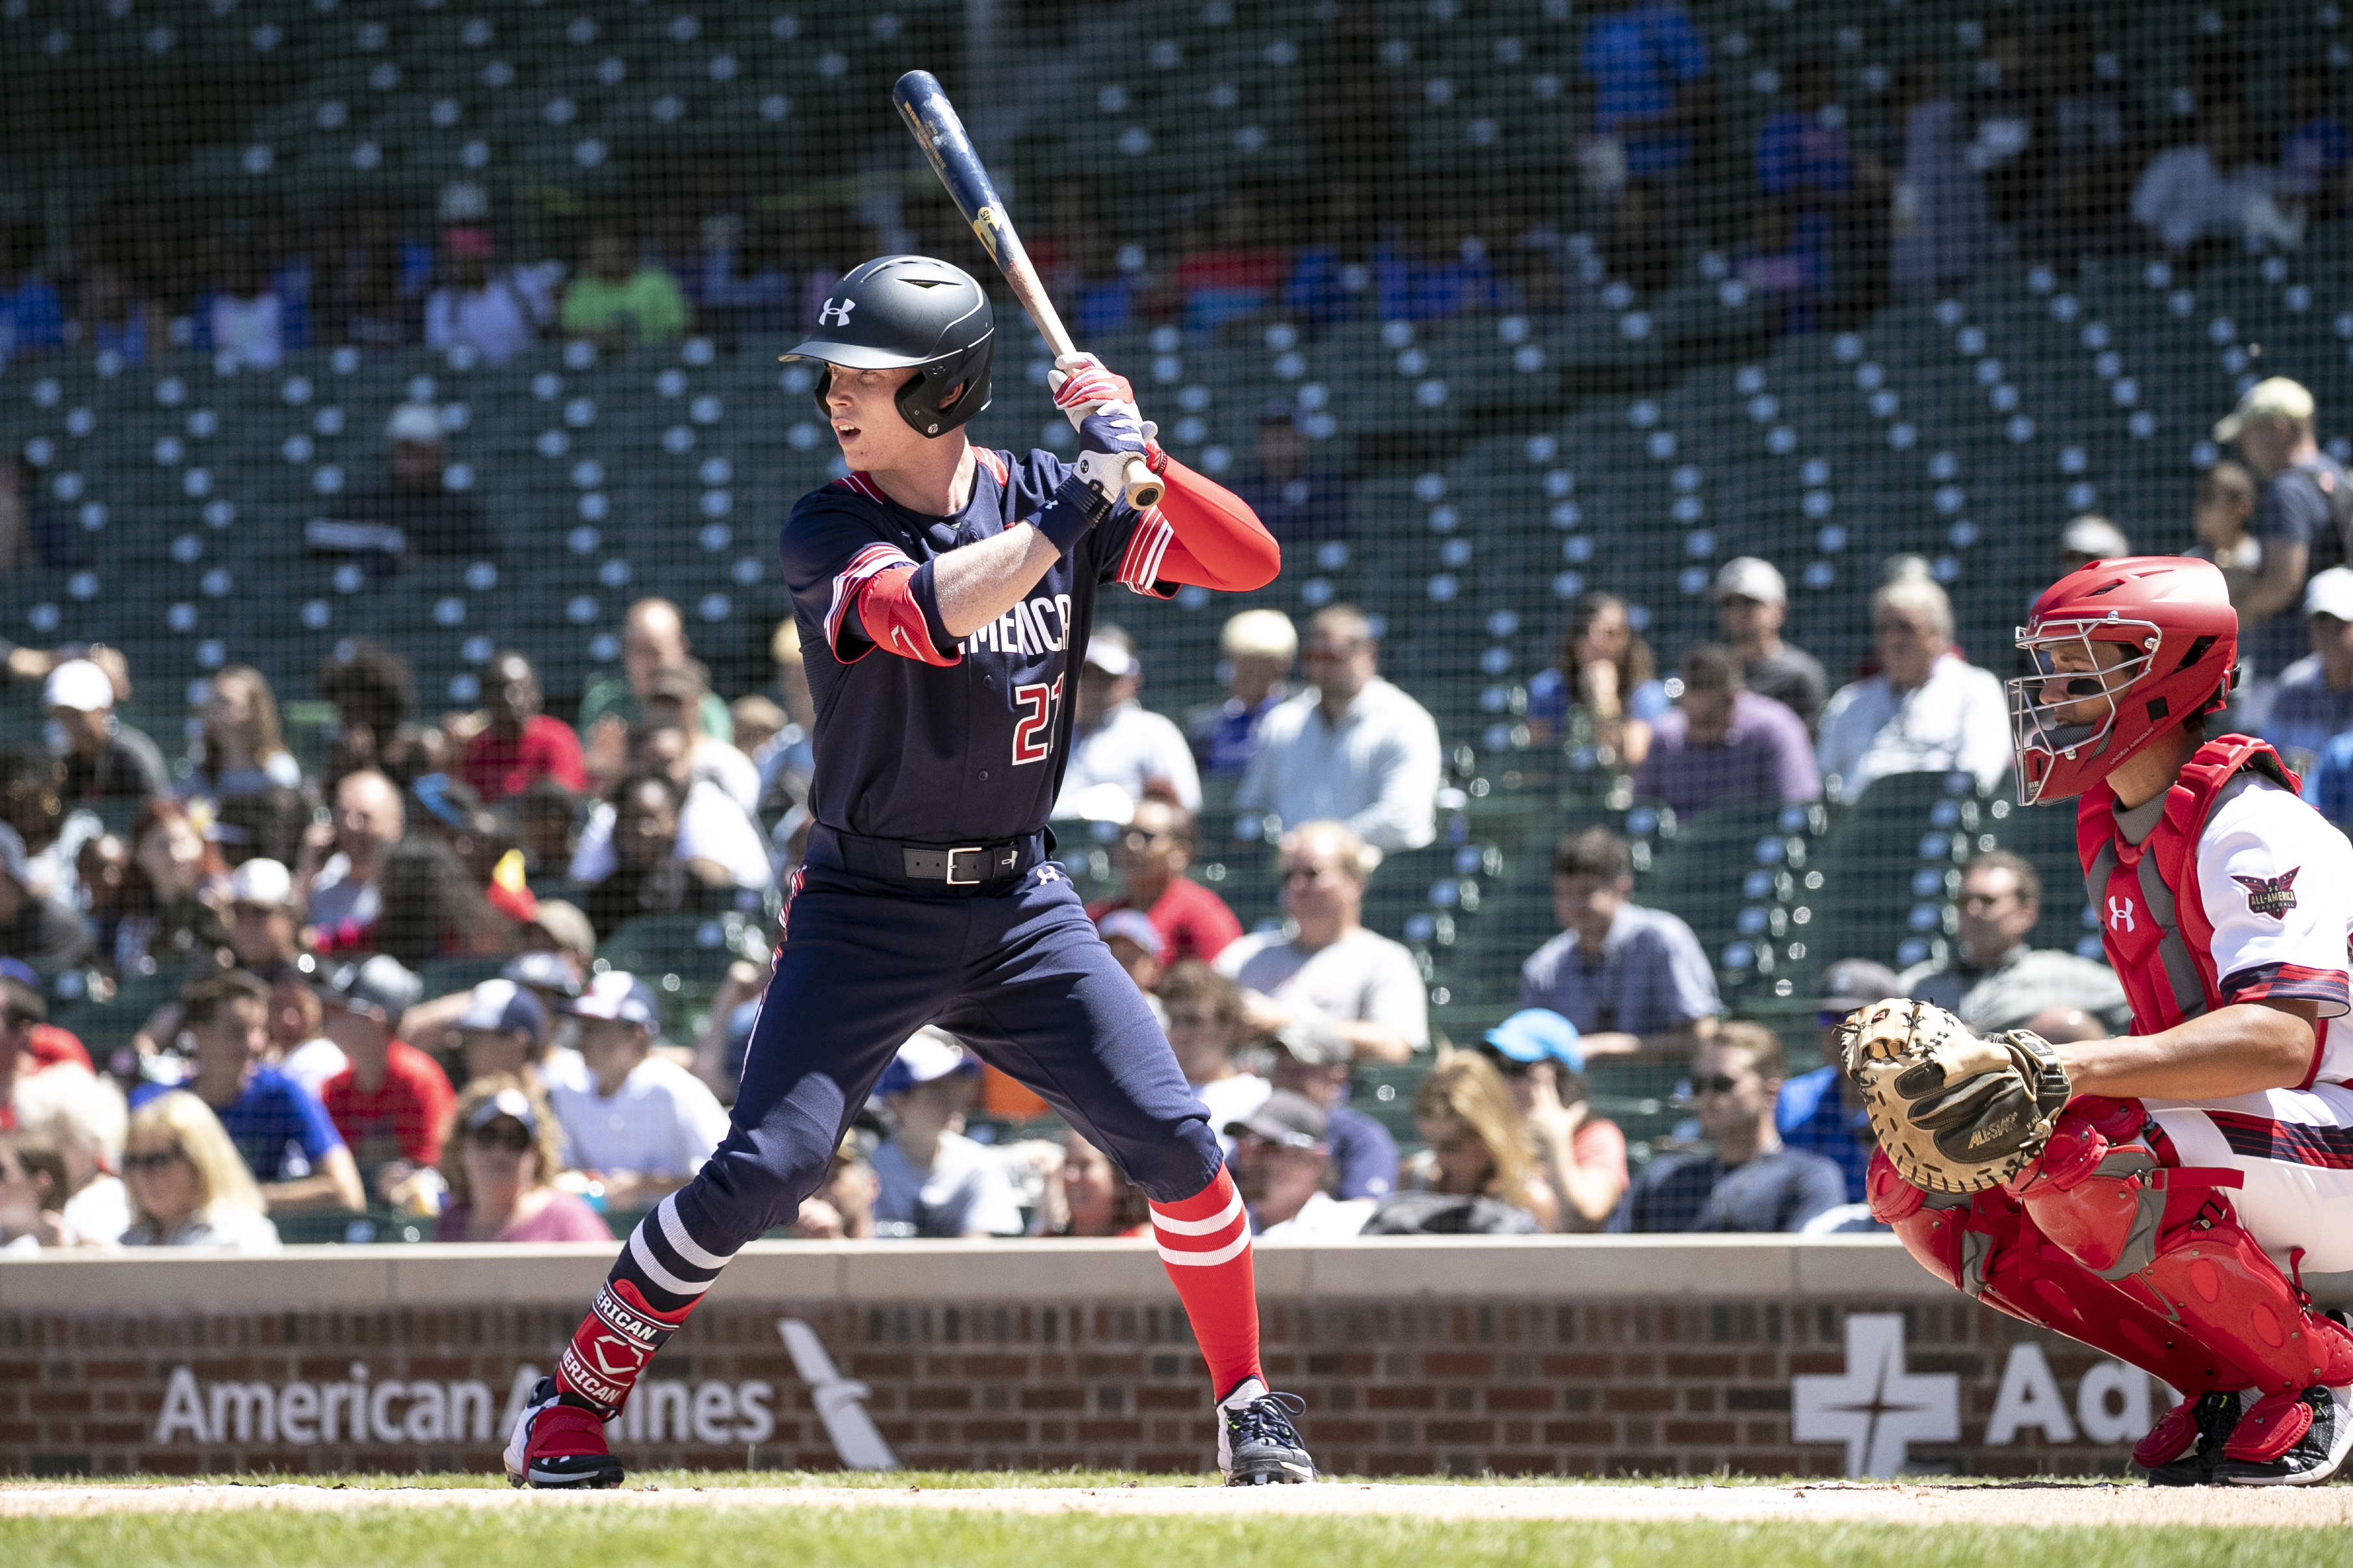 Major League Baseball Archive: Under Armour All-American Game